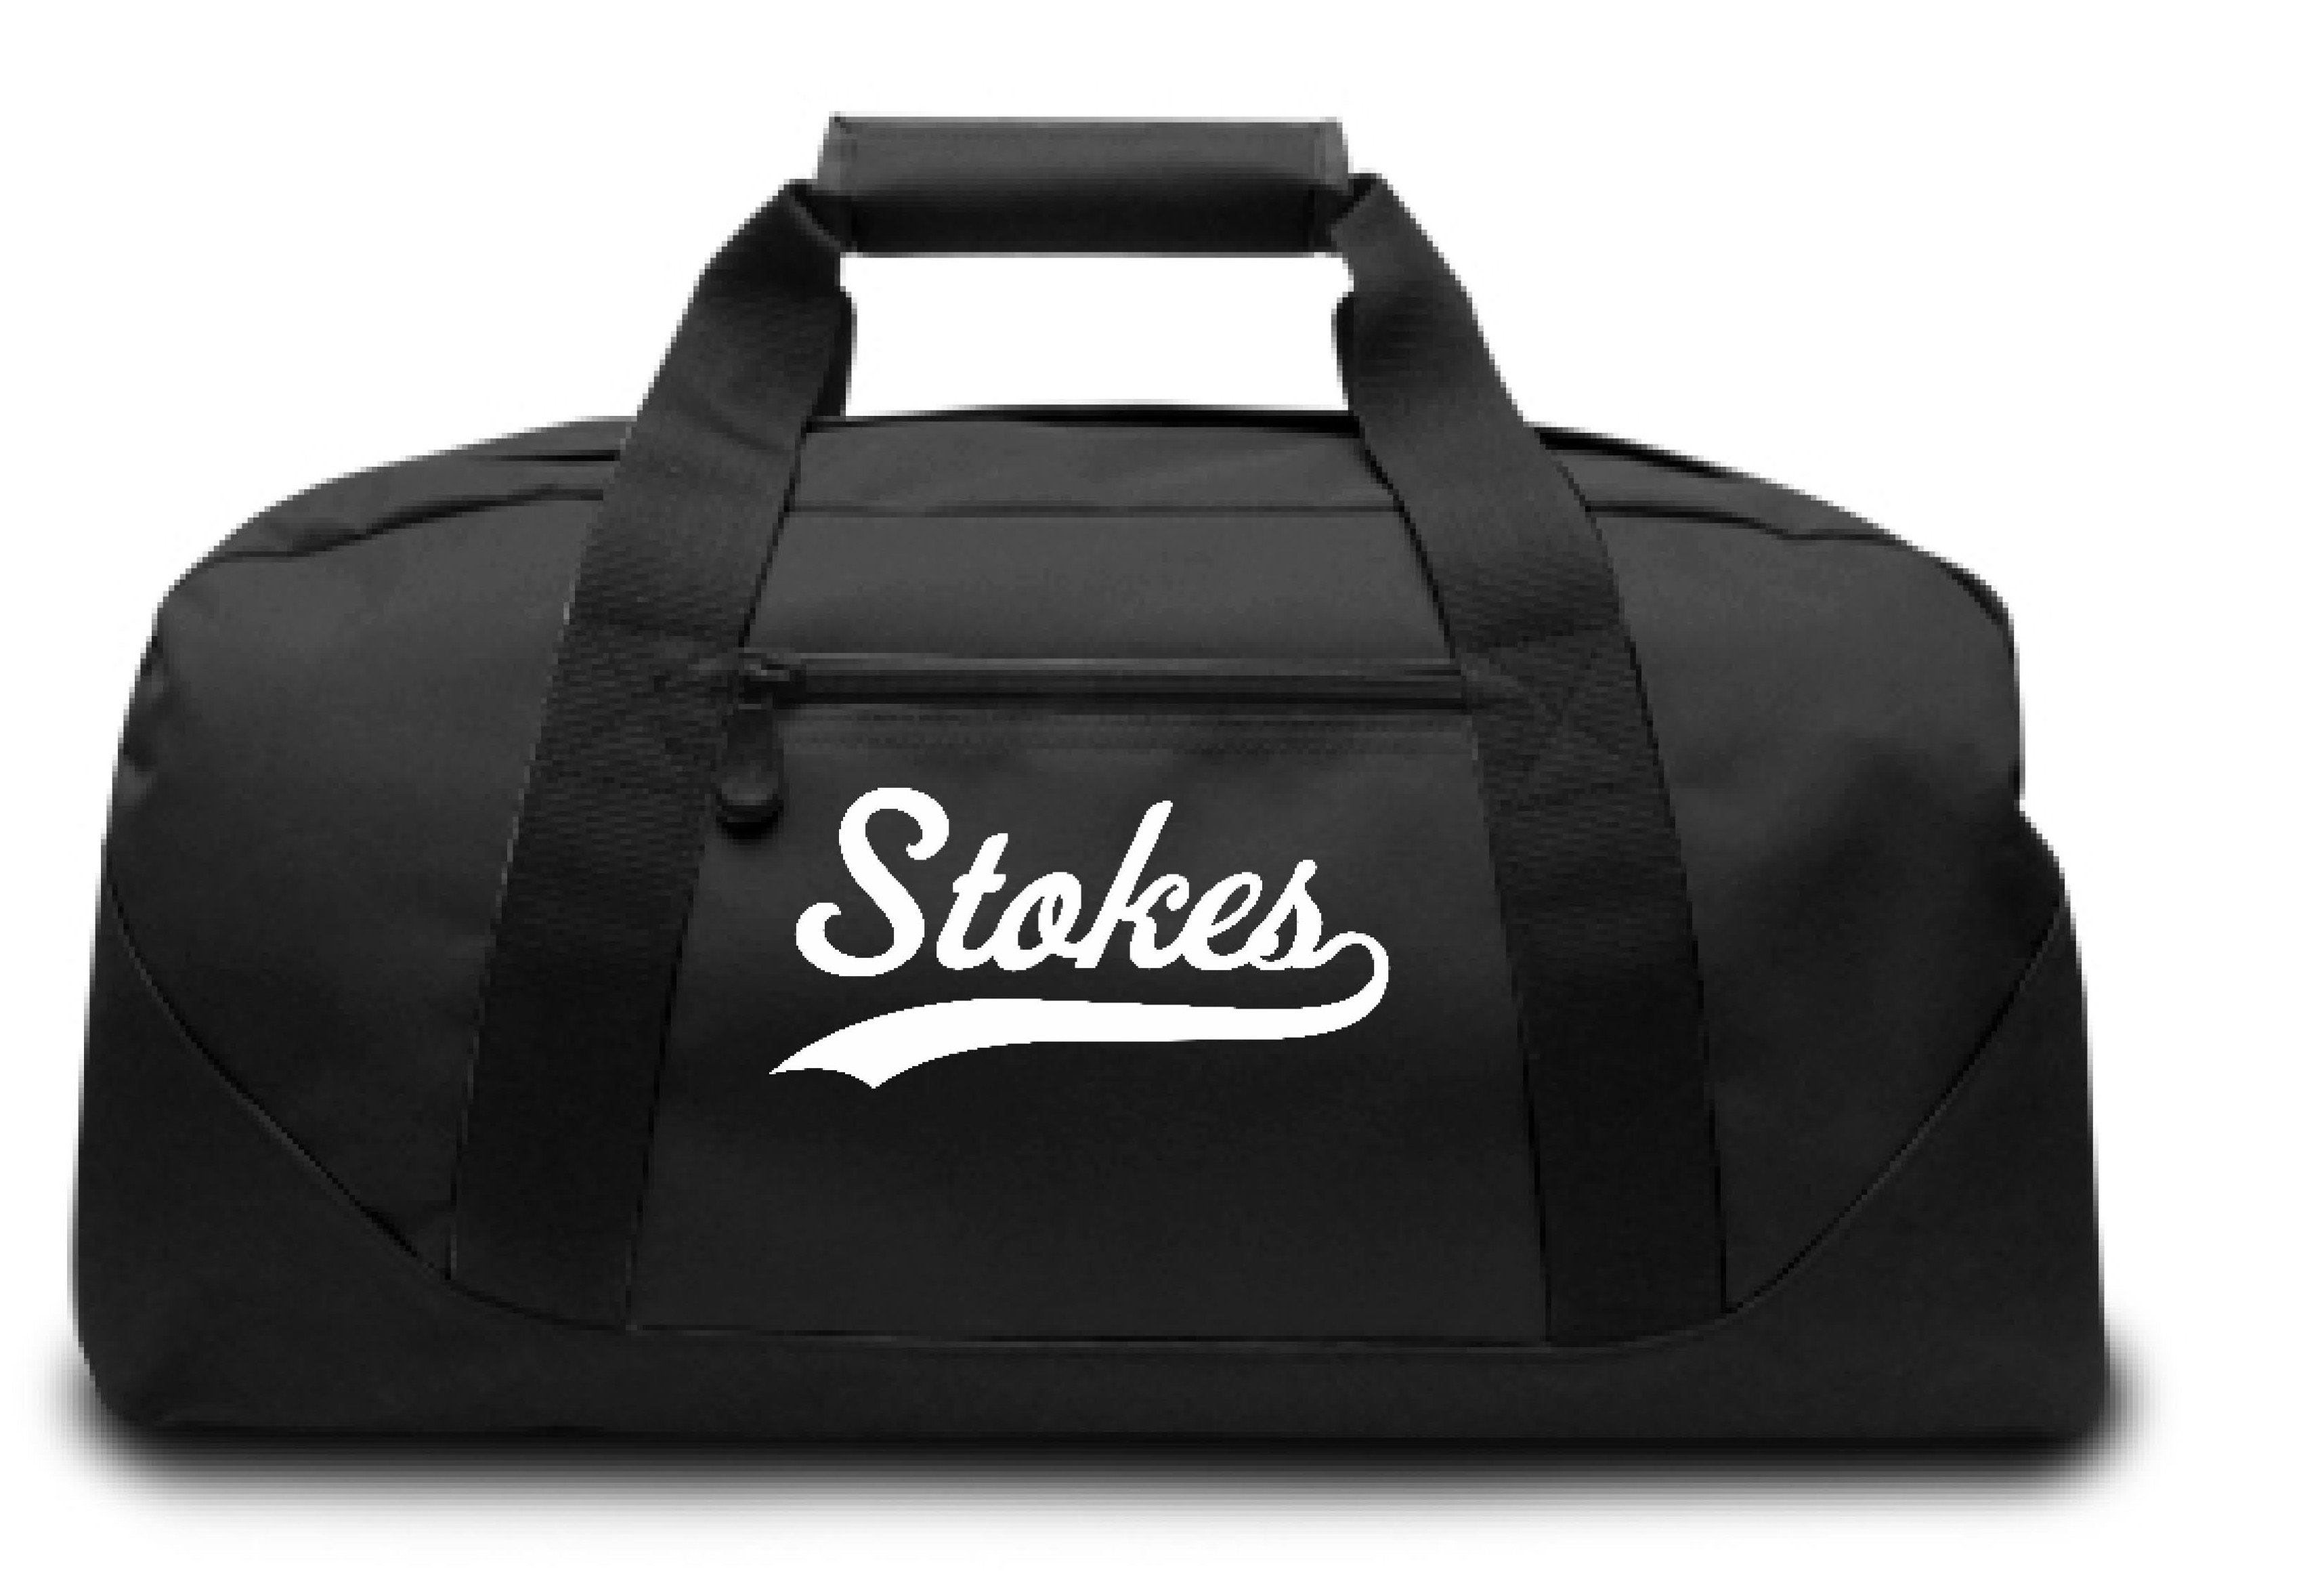 Stokes Duffle Bag